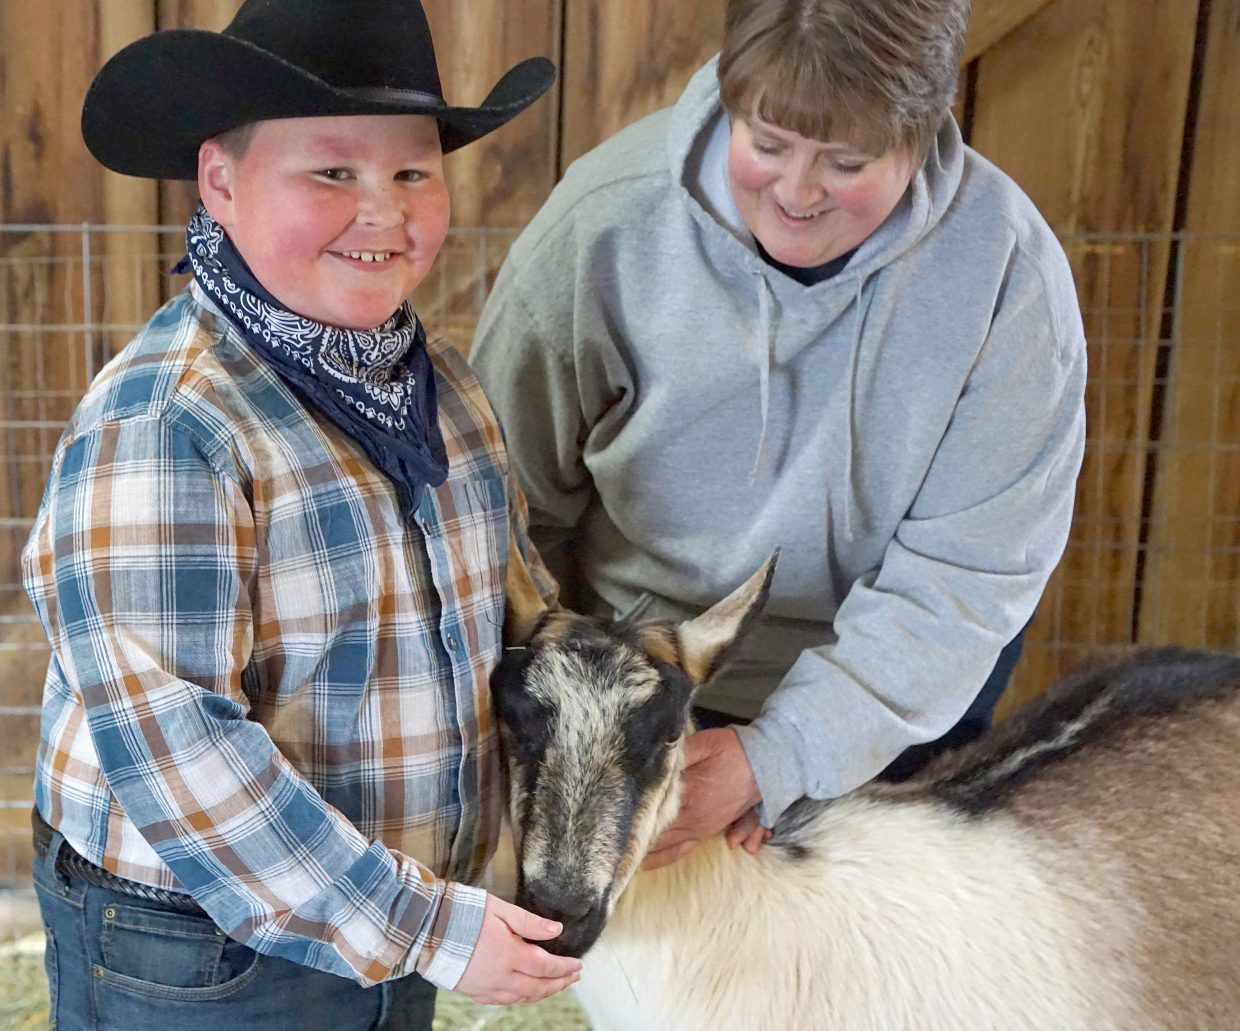 Parents Doug and Chrissy Winters wanted to raise their sons on a family farm and in 2011 there were able to buy their dream property in Moffat County. Now the family works together to raise farm animals such as chickens, cattle, pigs, and rabbits along with their dairy goats. Pictured here Chrissy Winters helps 8-year-old Zach with one of the goats.